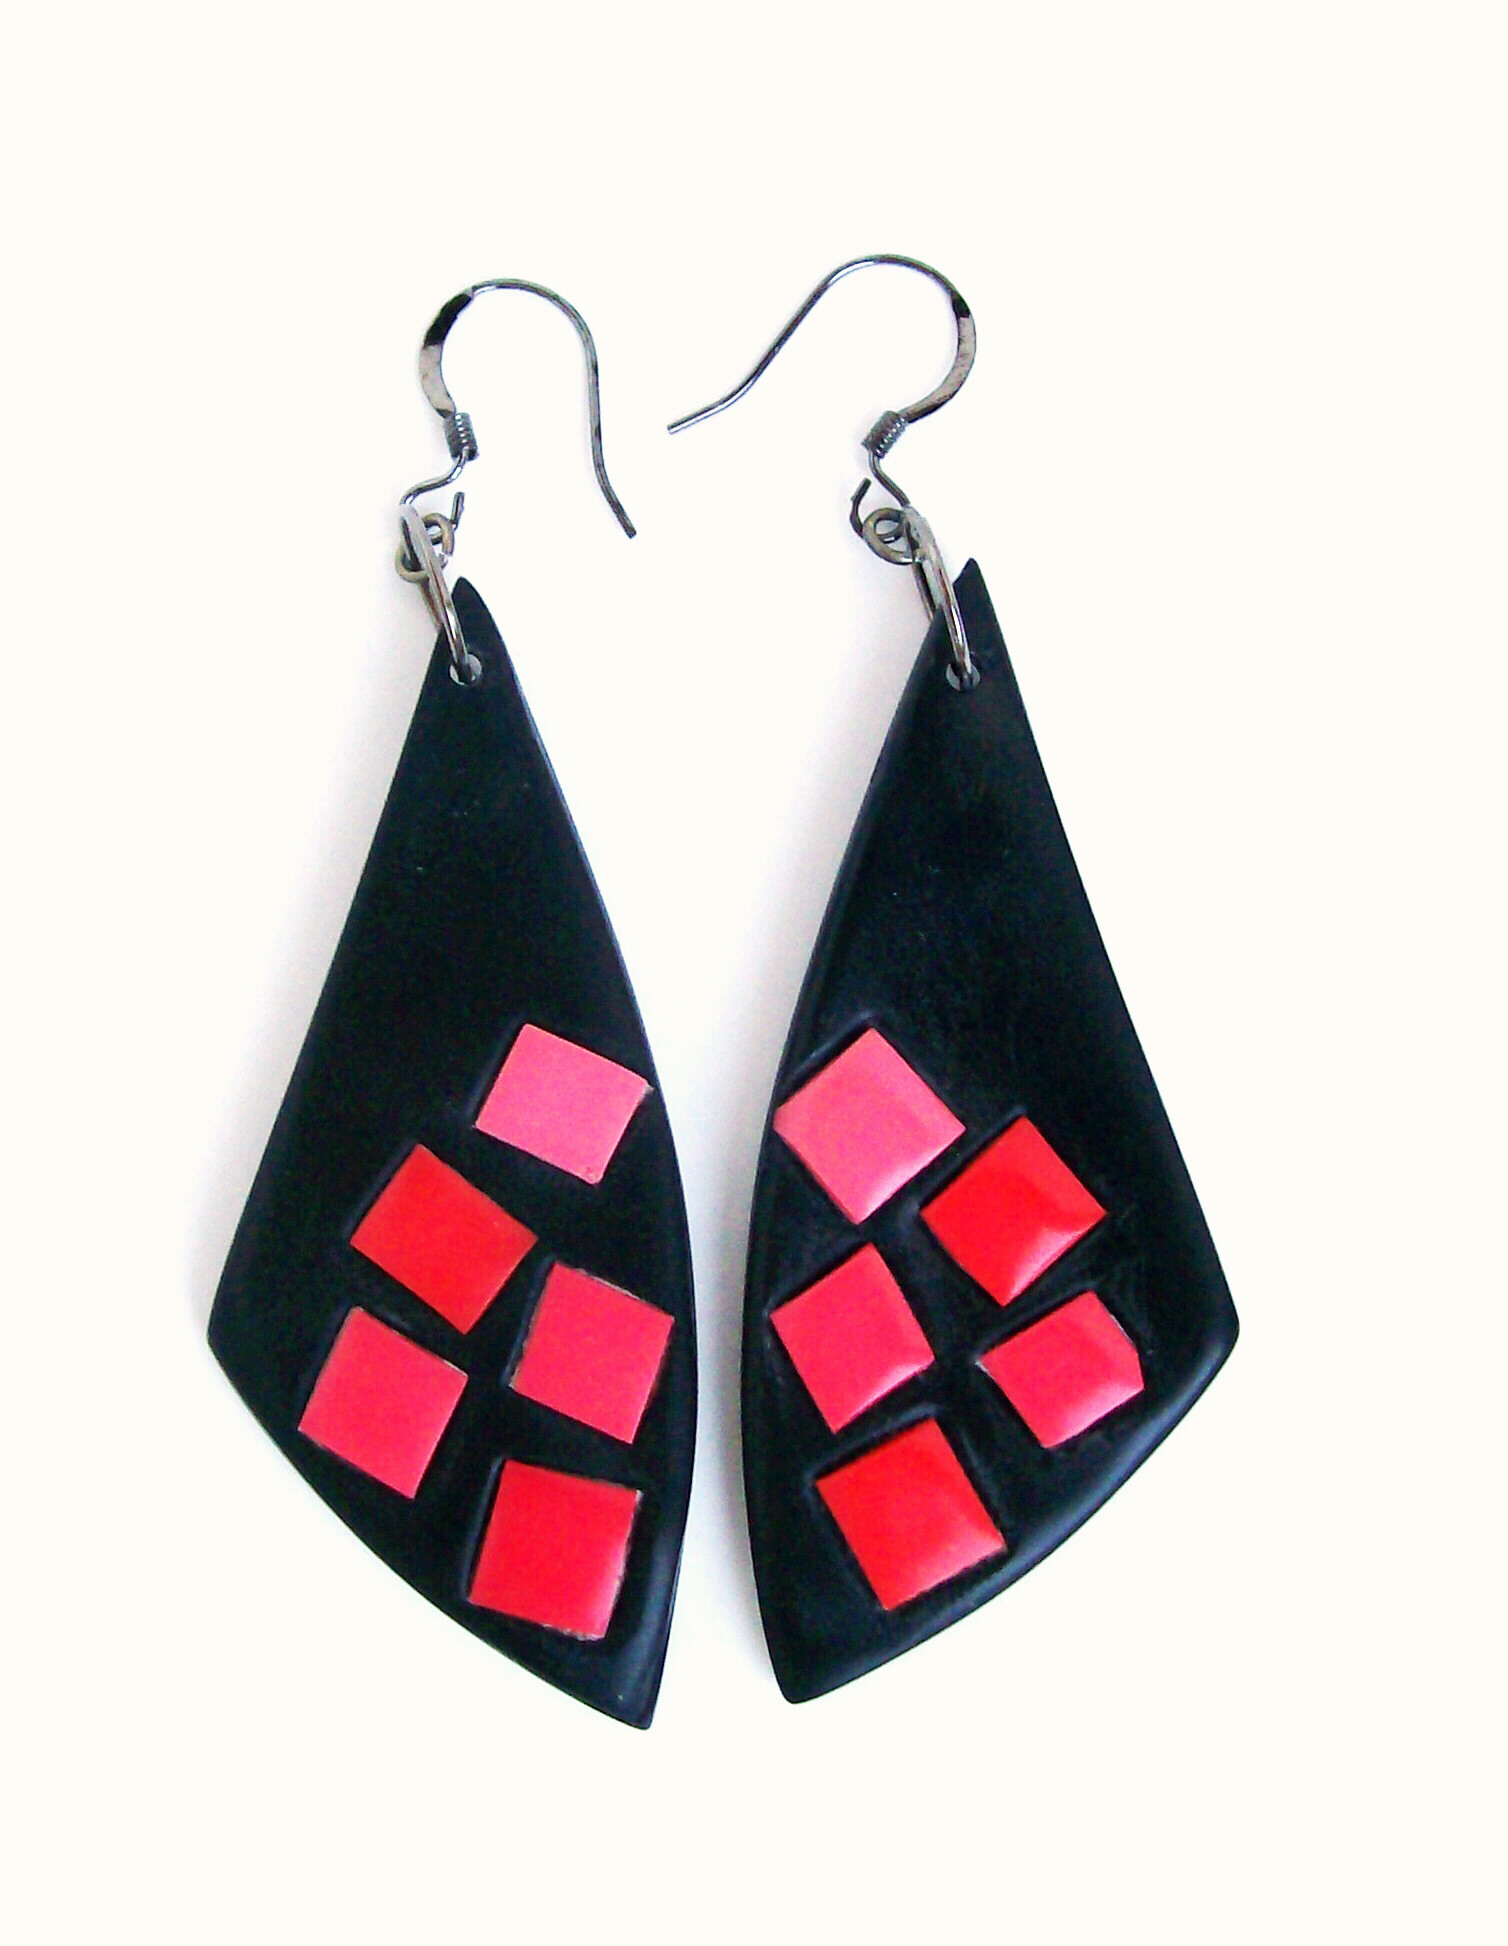 clay Eper tangerine-pink mosaic dangle earrings